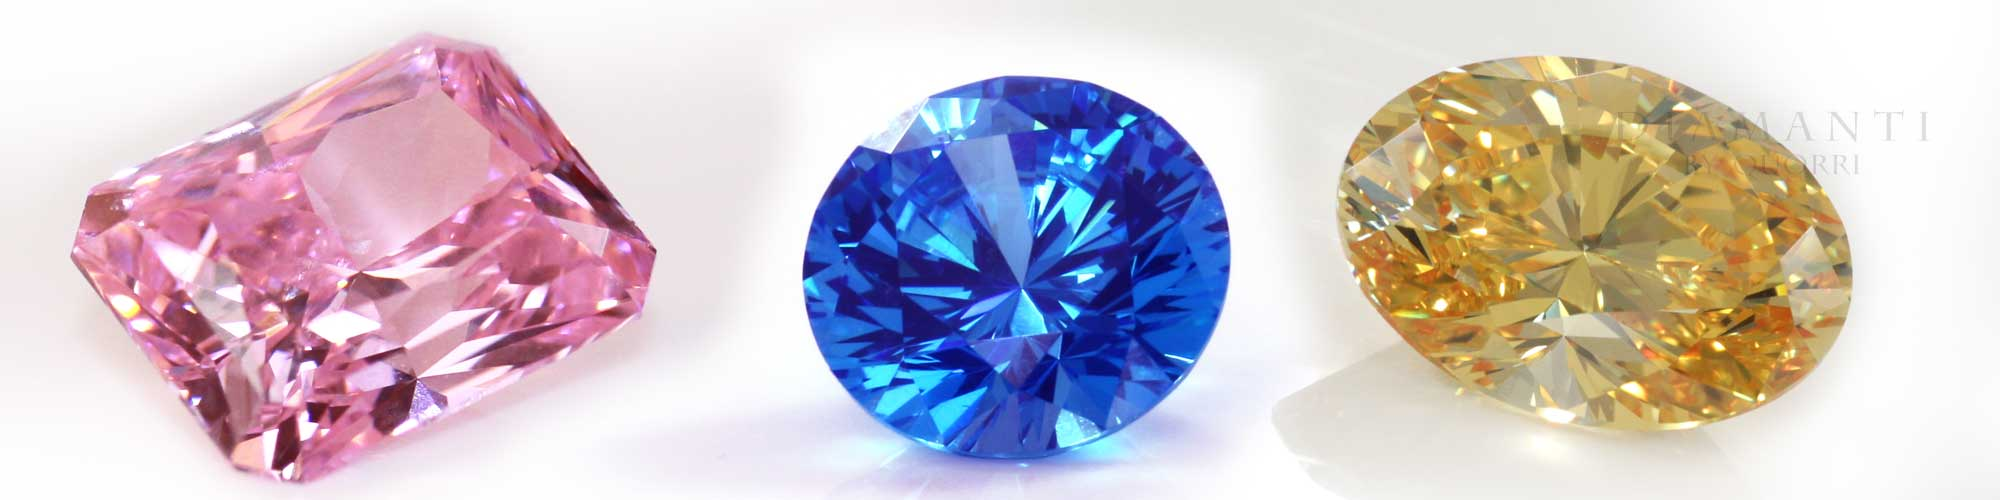 loose cultured puregem sapphire gemstones and rings at Quorri Canada